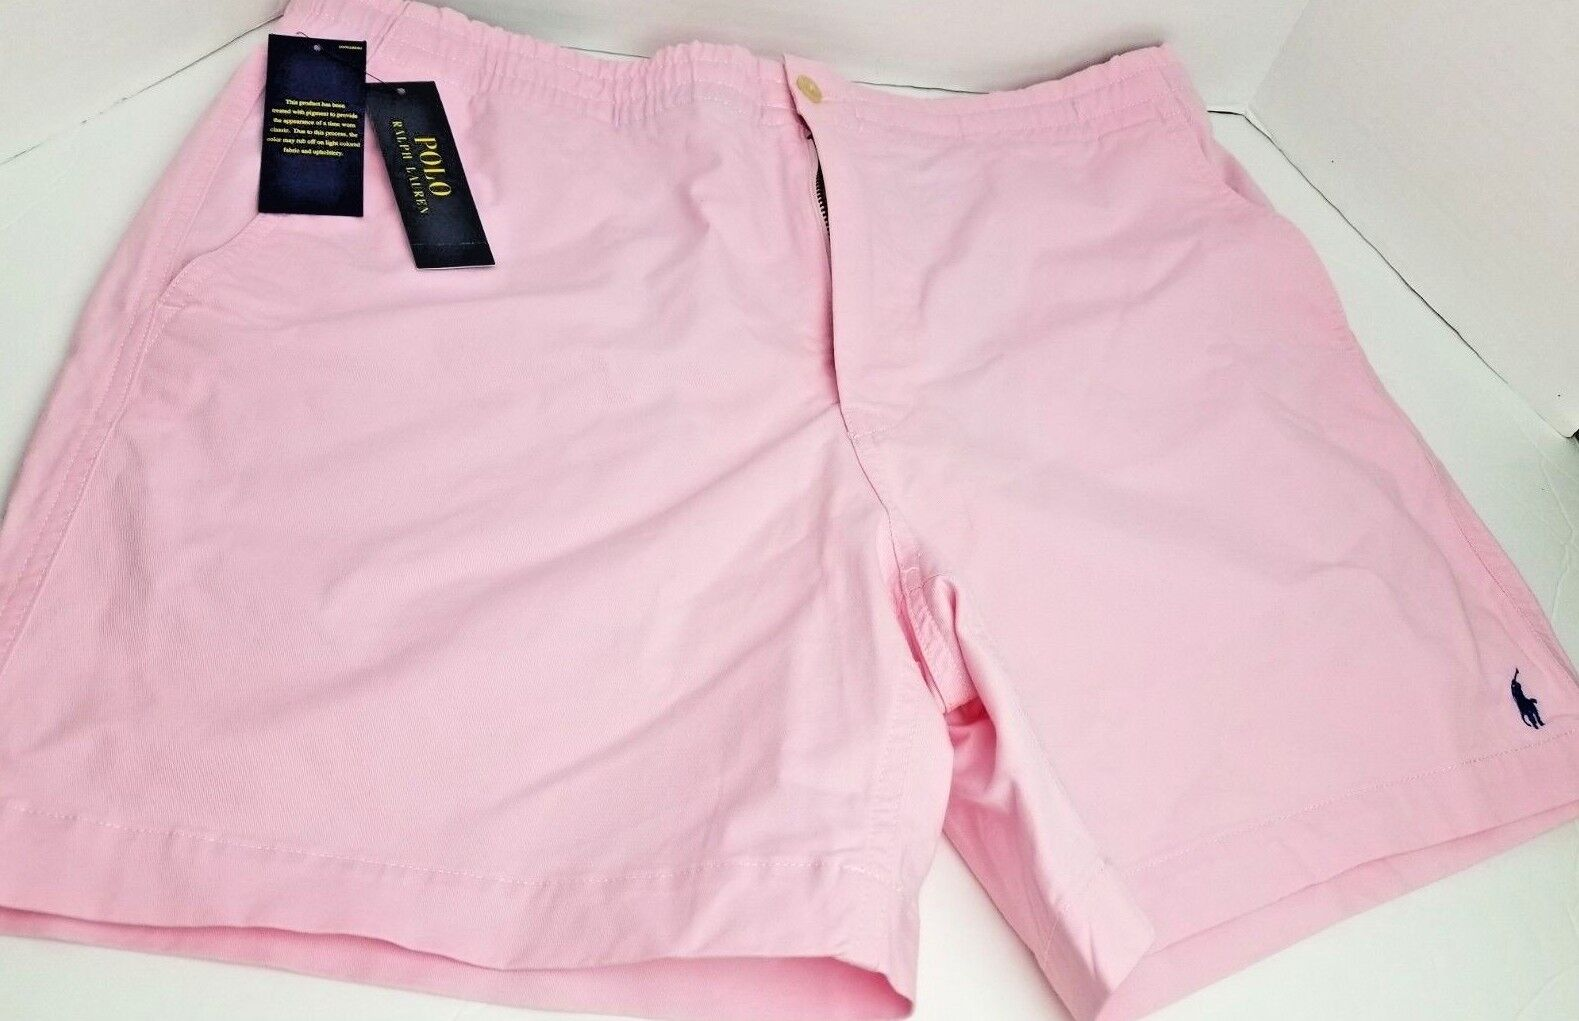 RALPH LAUREN POLO PINK XL CLASSIC FIT DRAW STRING STRETCH SHORTS MENS NWT NEW